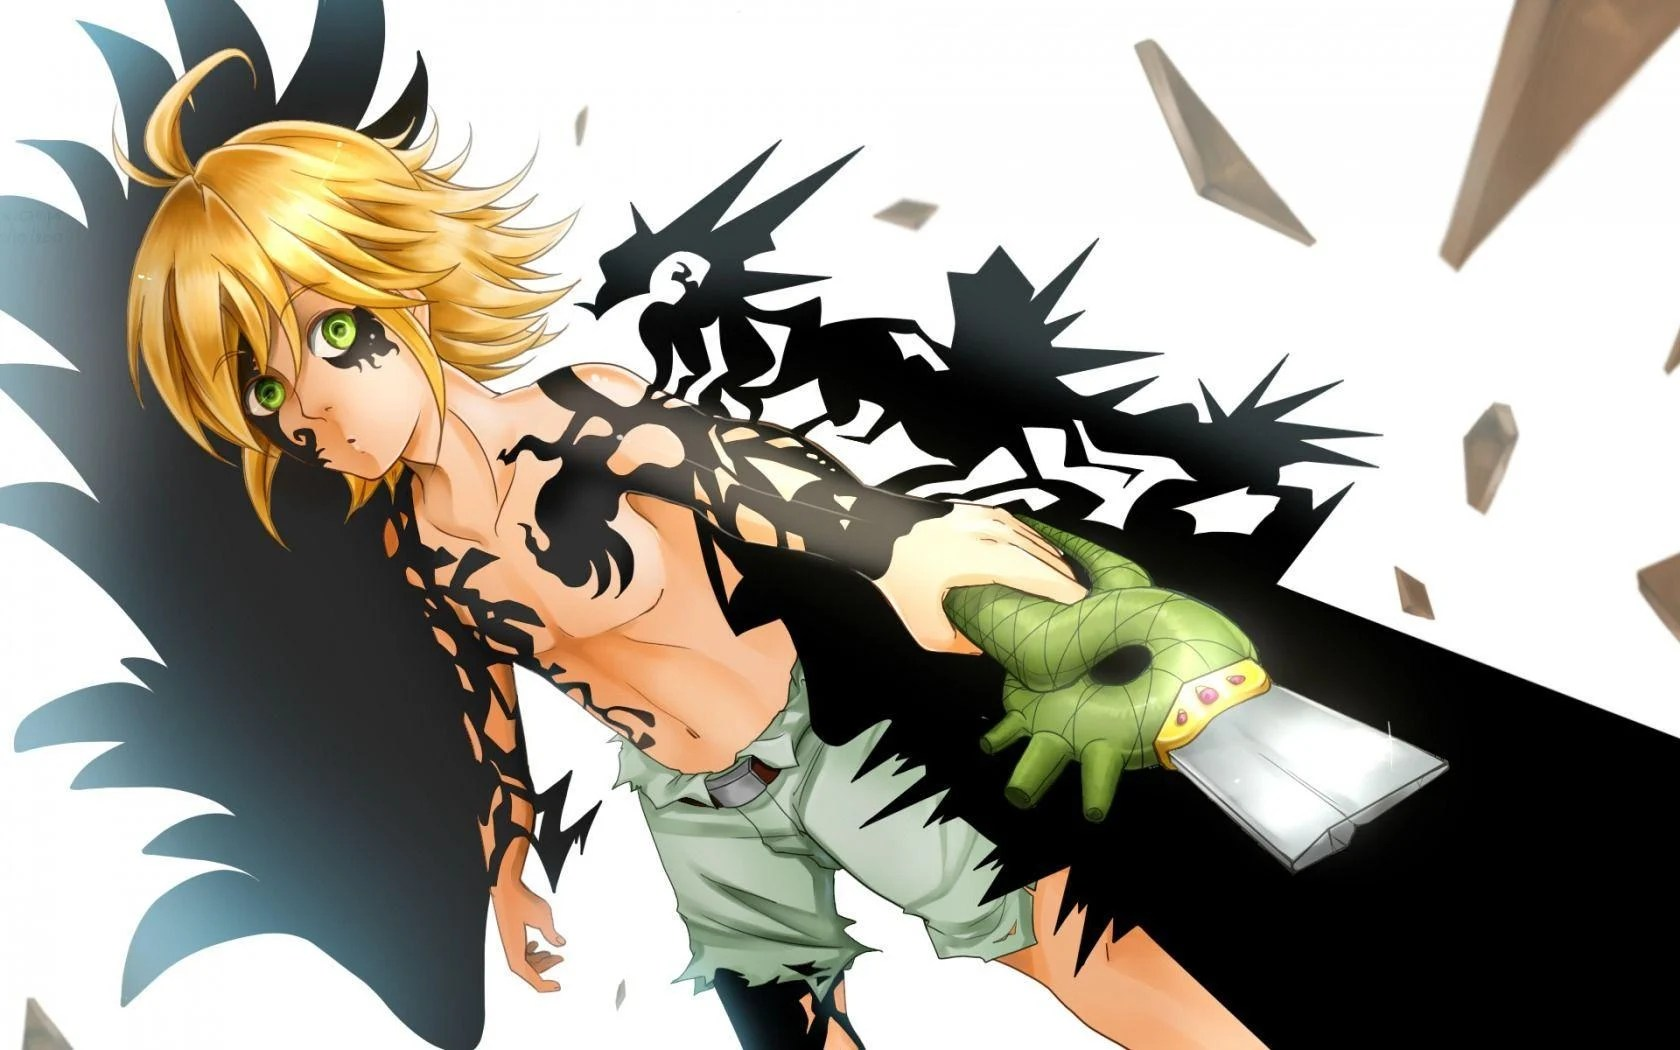 And seven steps to salvation. The Seven Deadly Sins Wallpapers - Wallpaper Cave